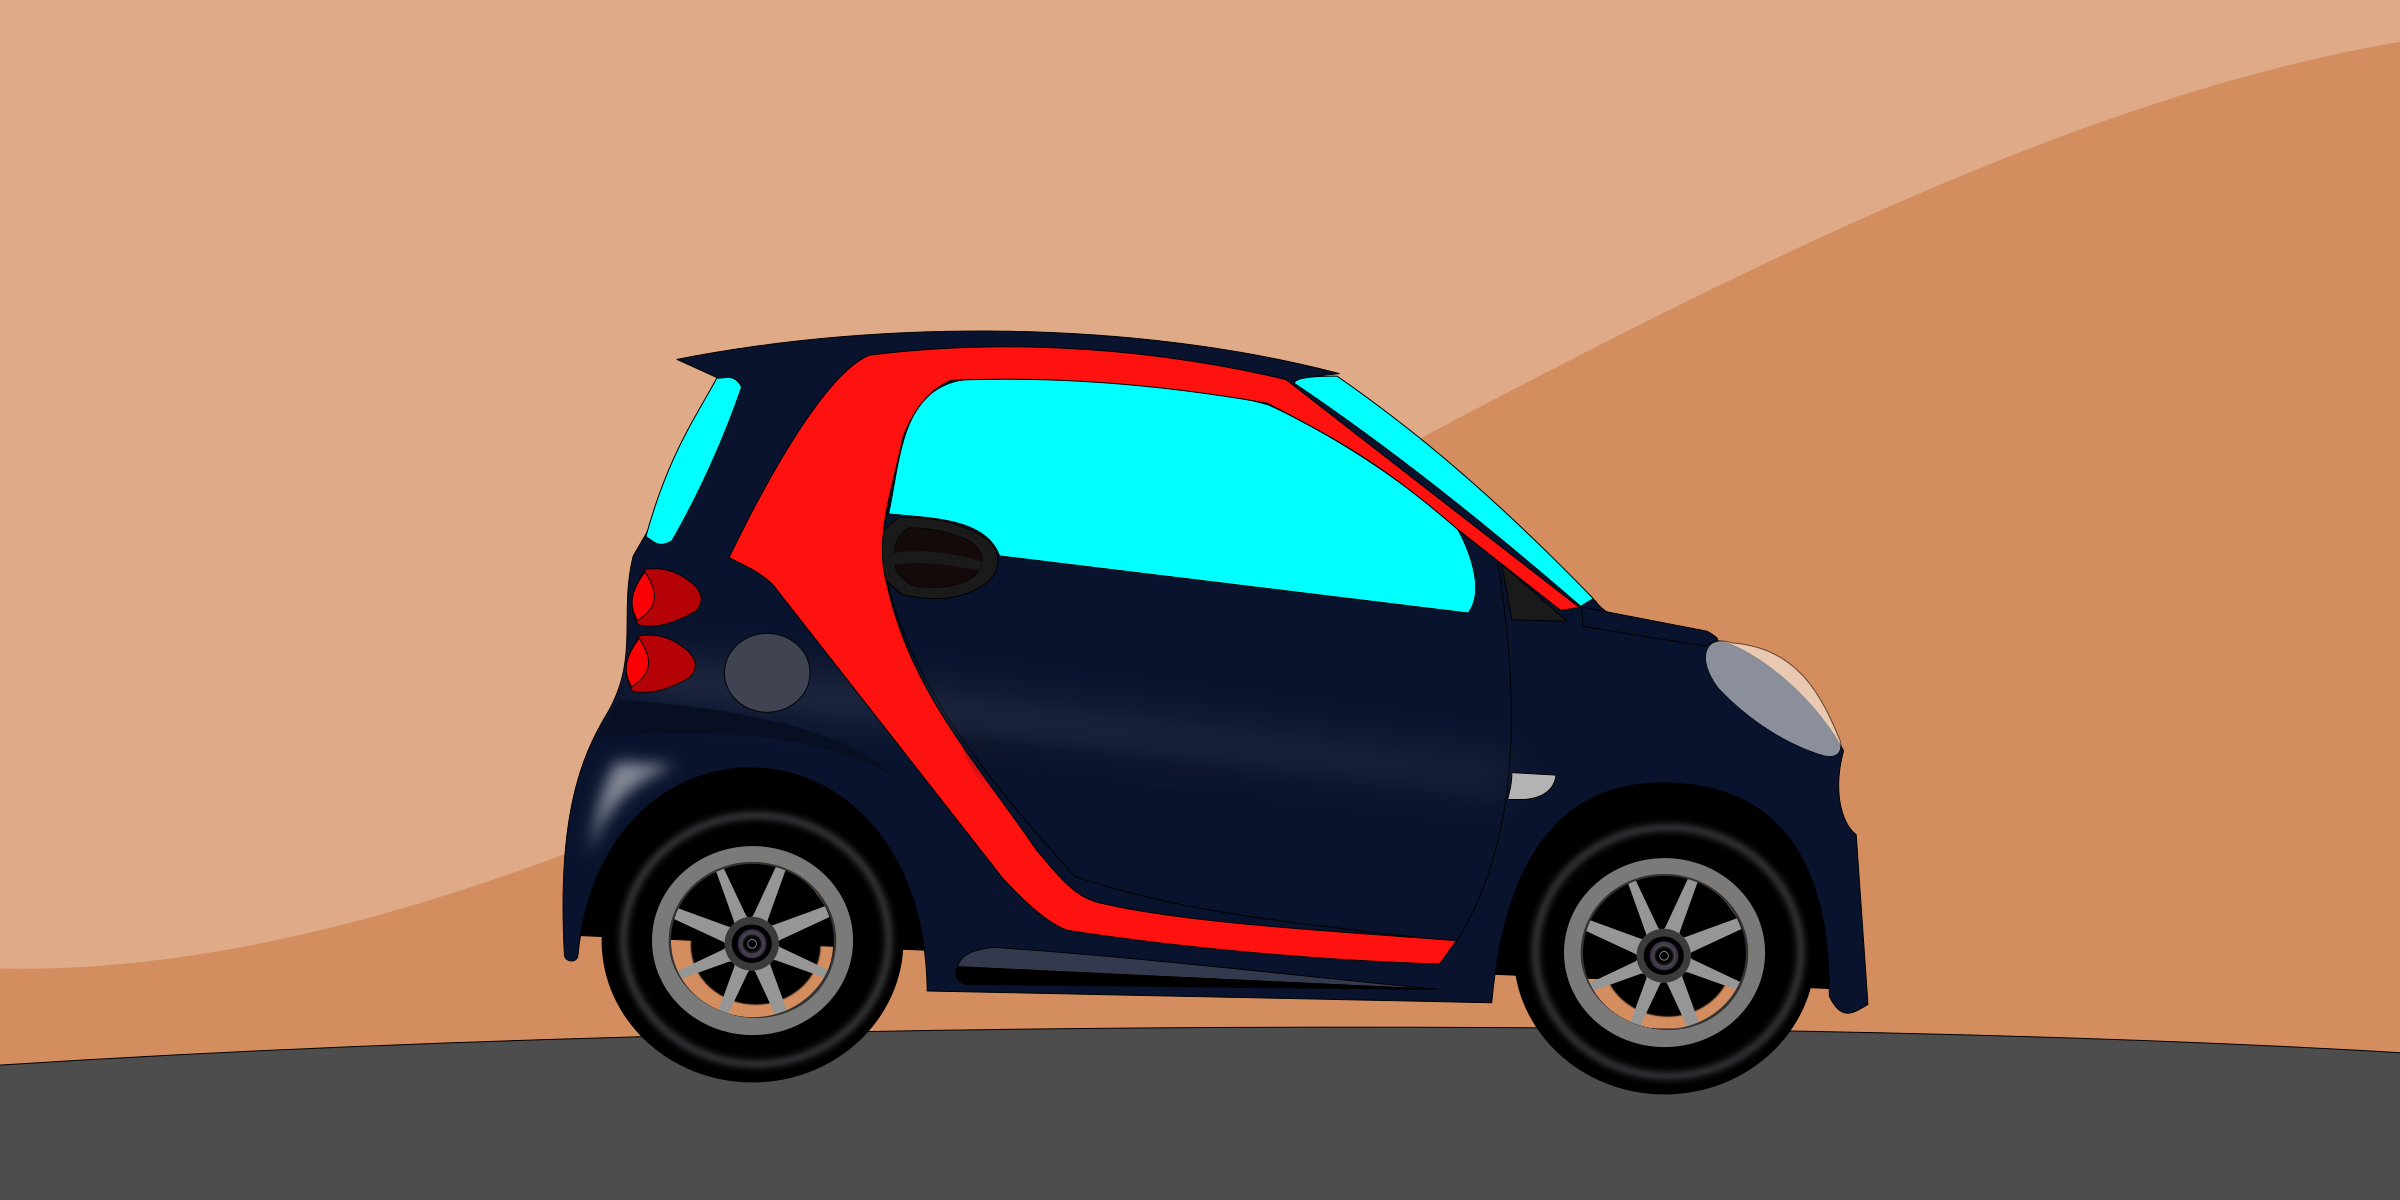 Animation of a mini car by aukipa